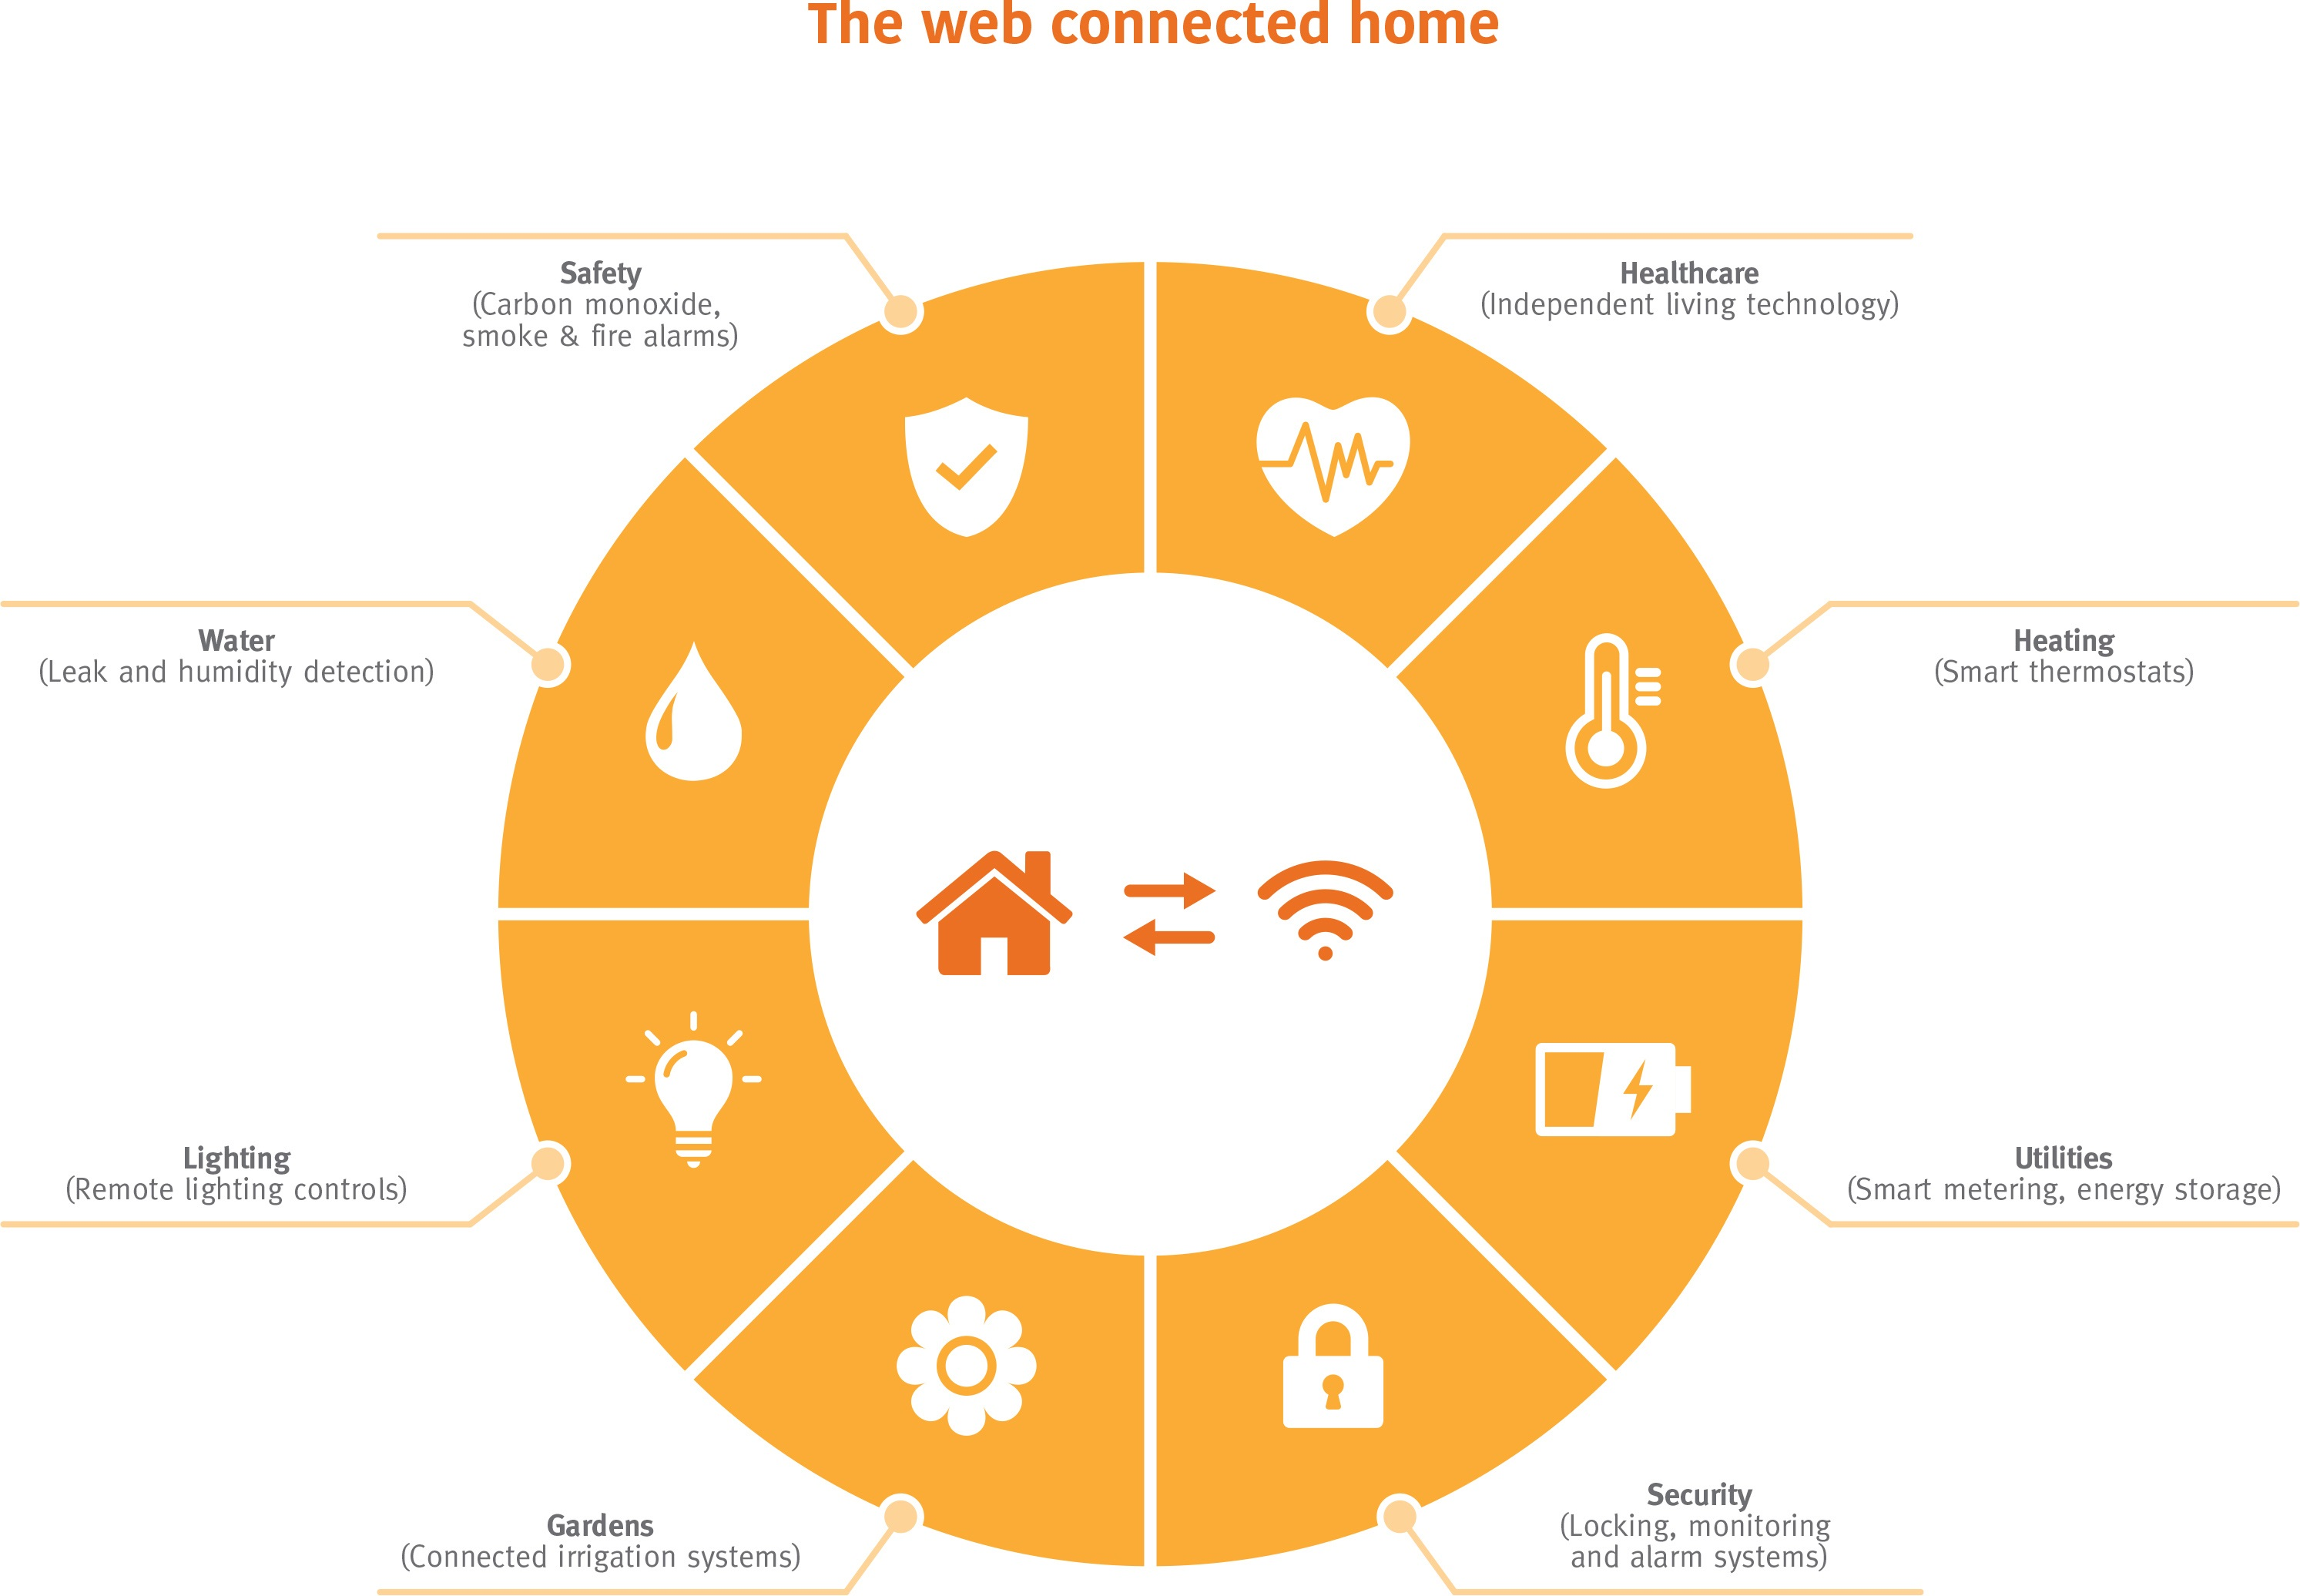 The Web Connected Home